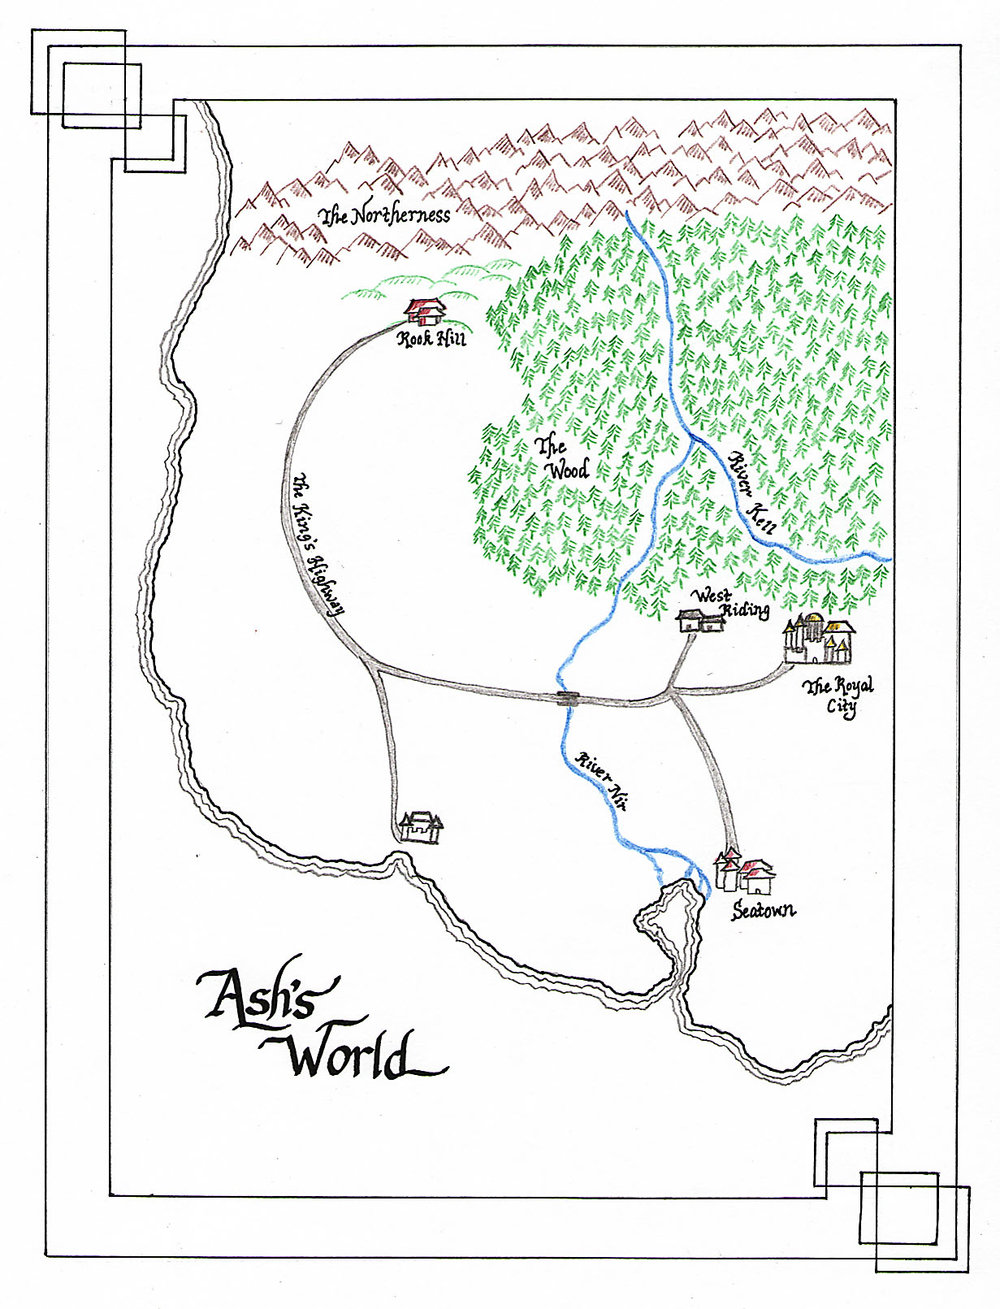 A map of Ash's world